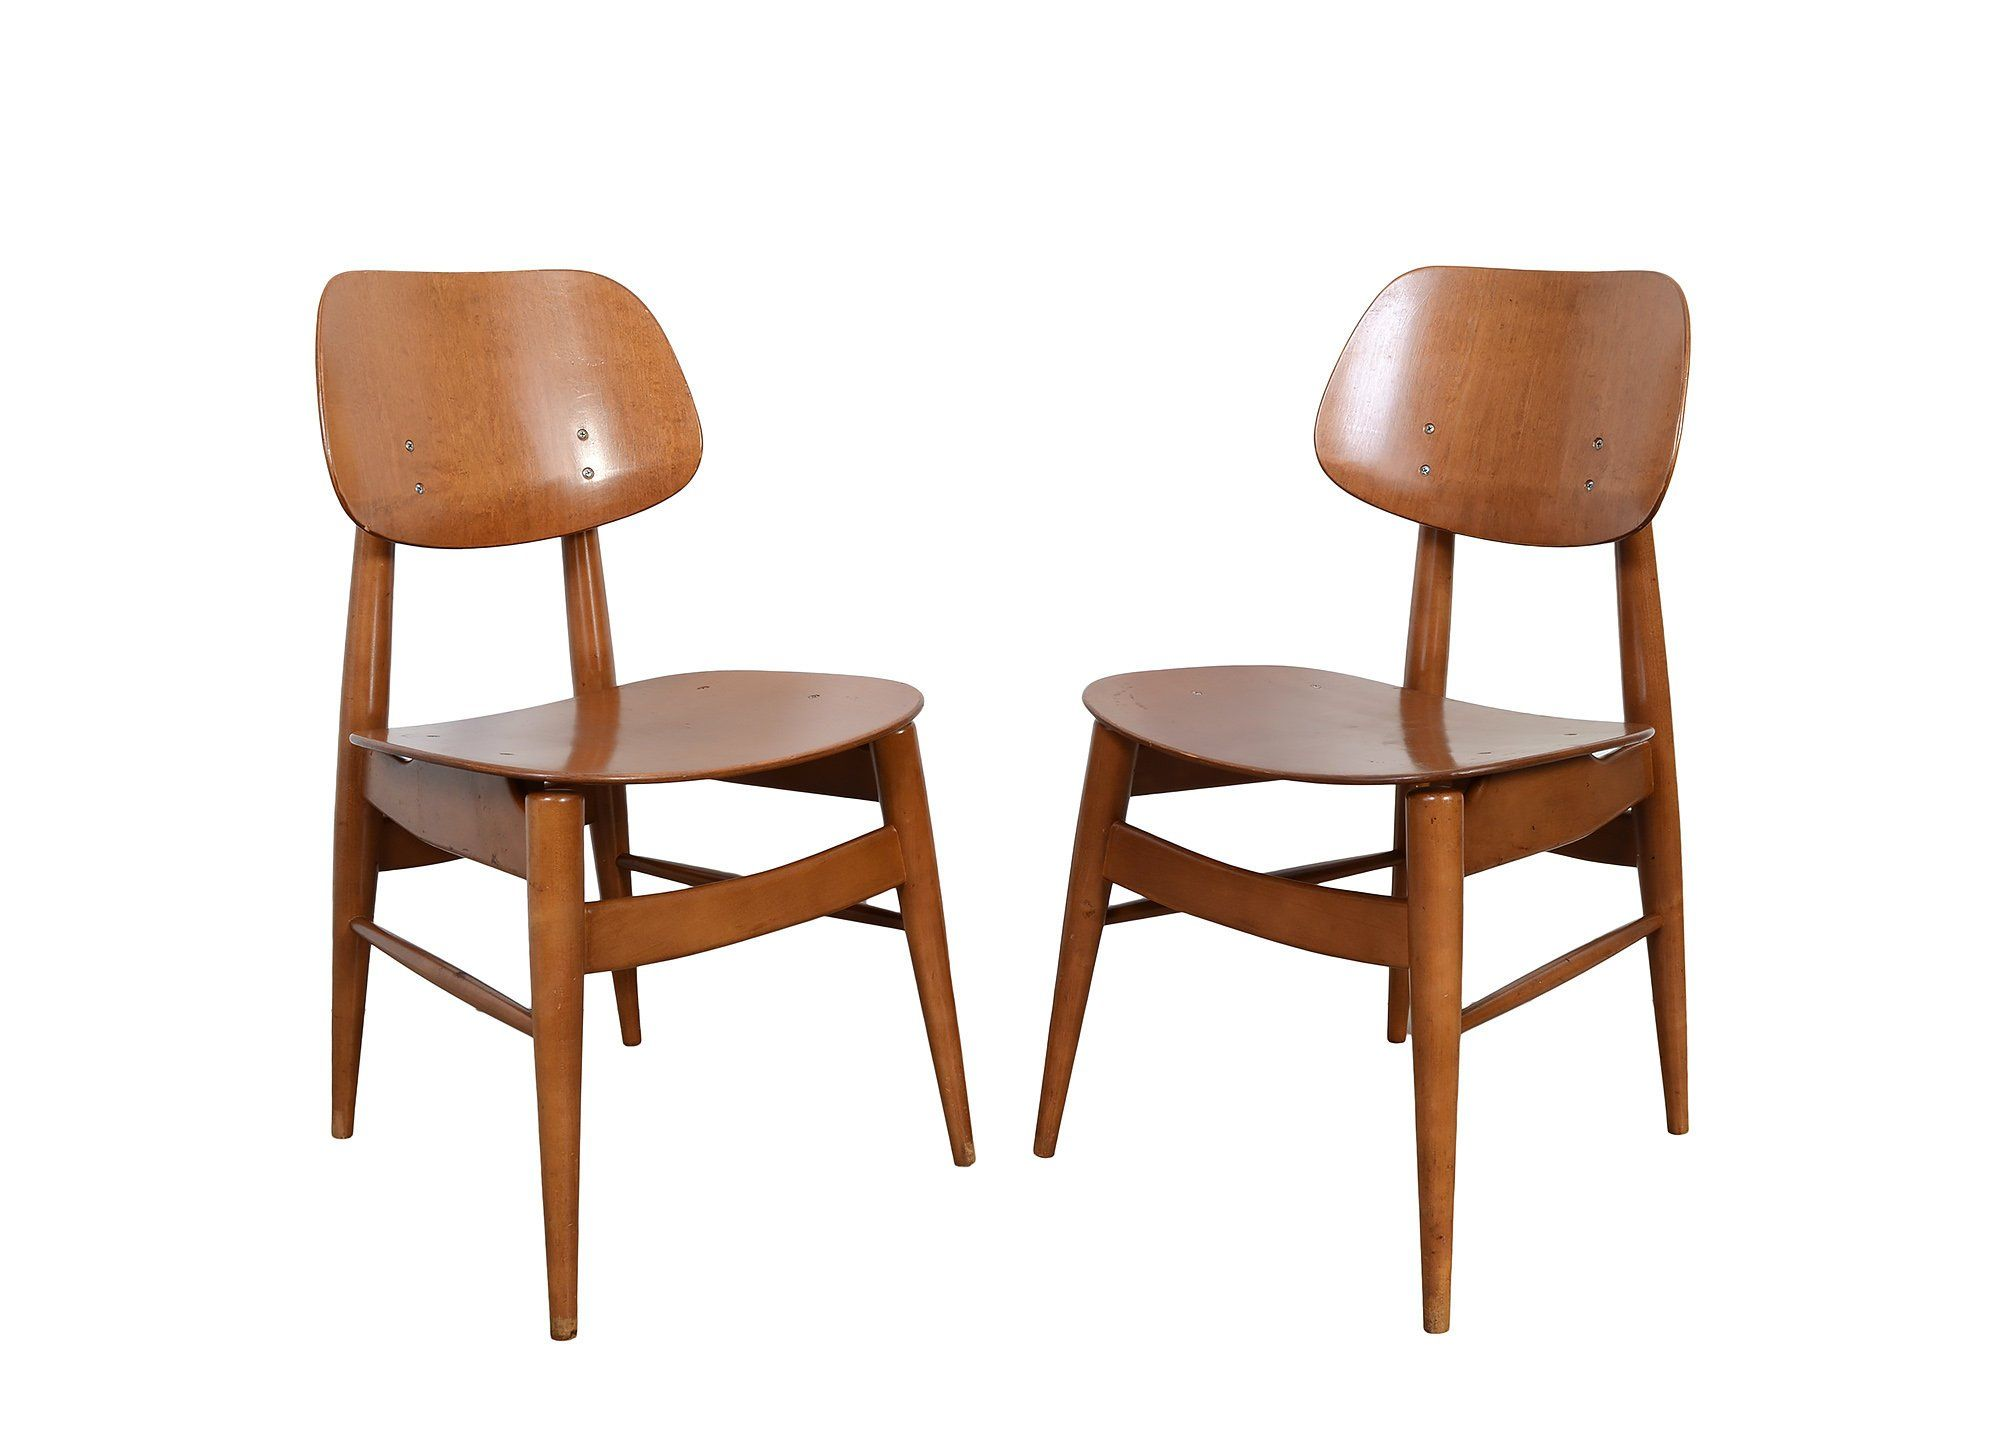 Thonet Chairs Bent Wood Chairs Mid Century Modern by